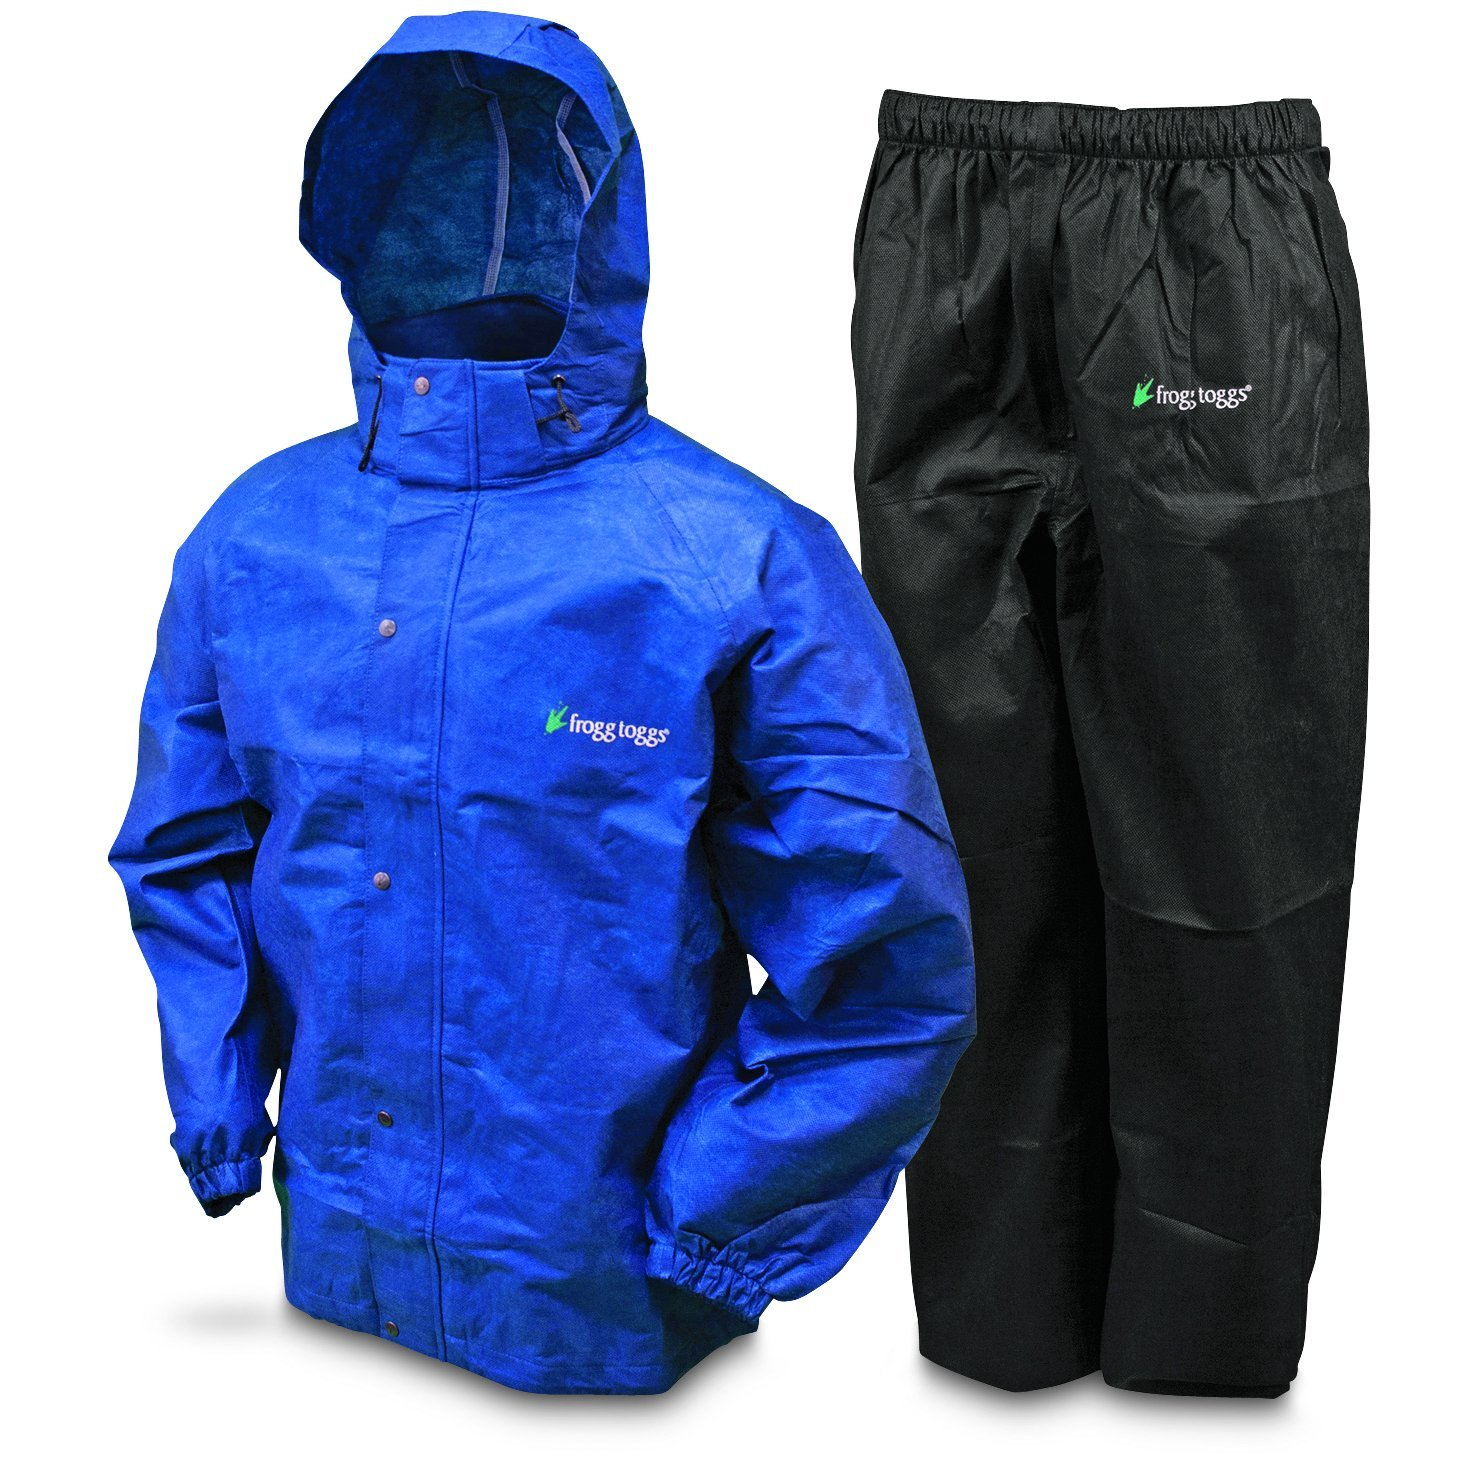 Click here to buy Frogg Toggs All Sport Rain Suit.